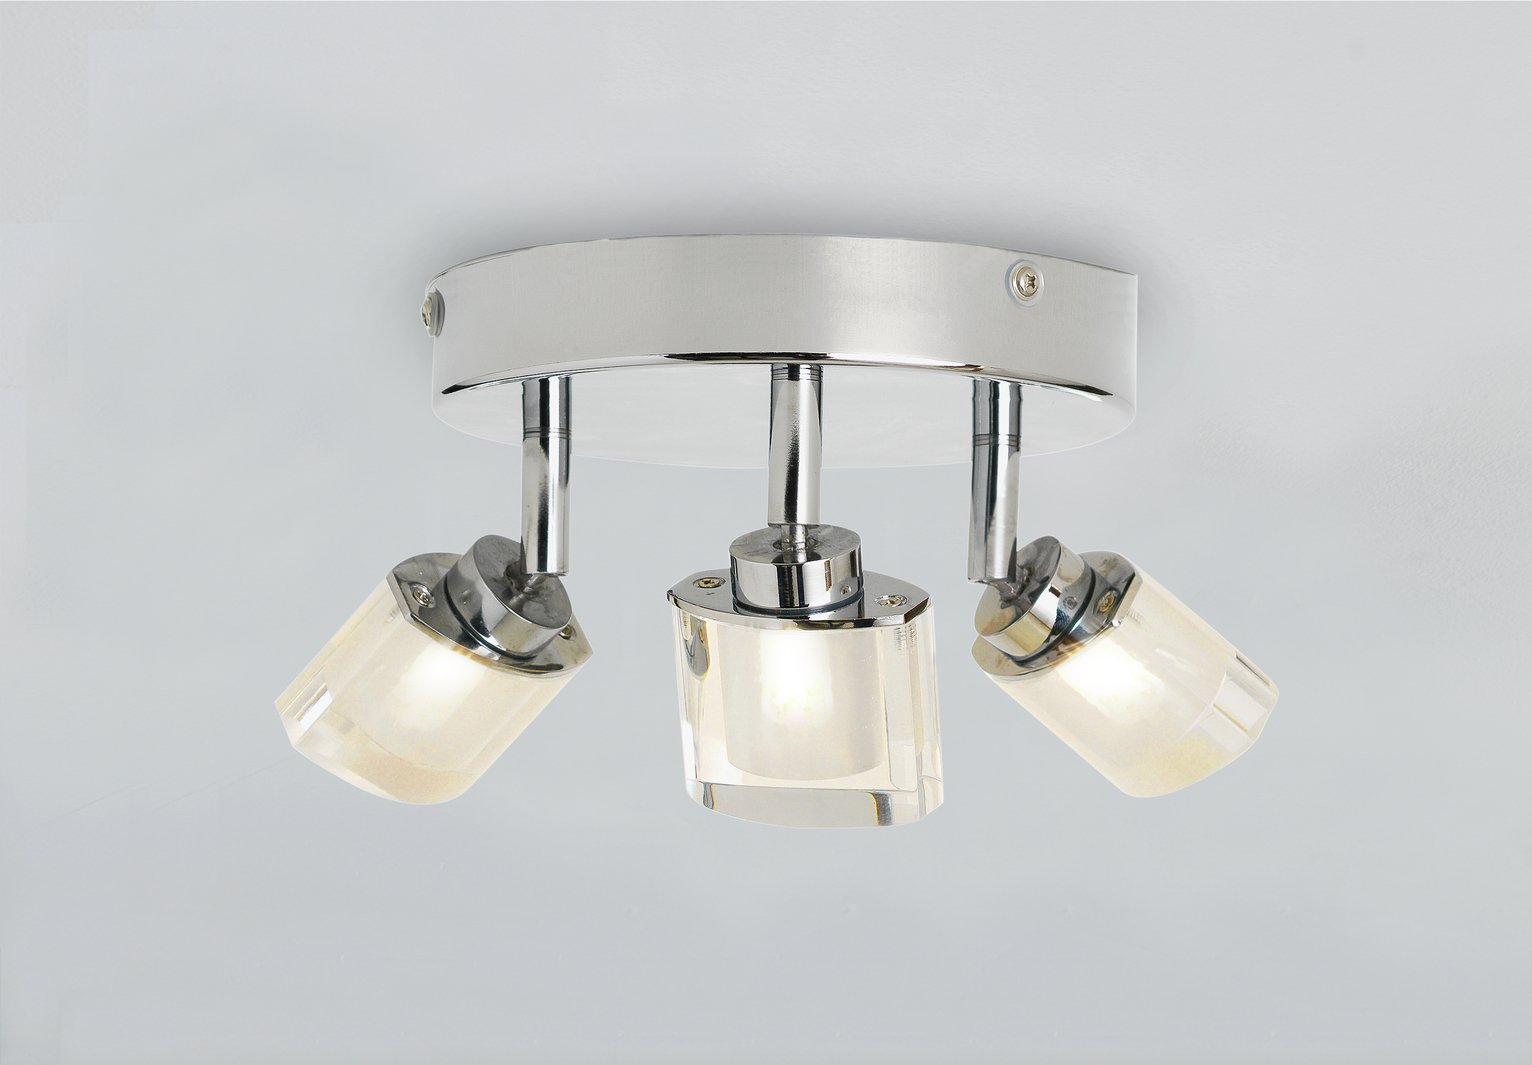 Results for bathroom light fittings in Home and garden Lighting